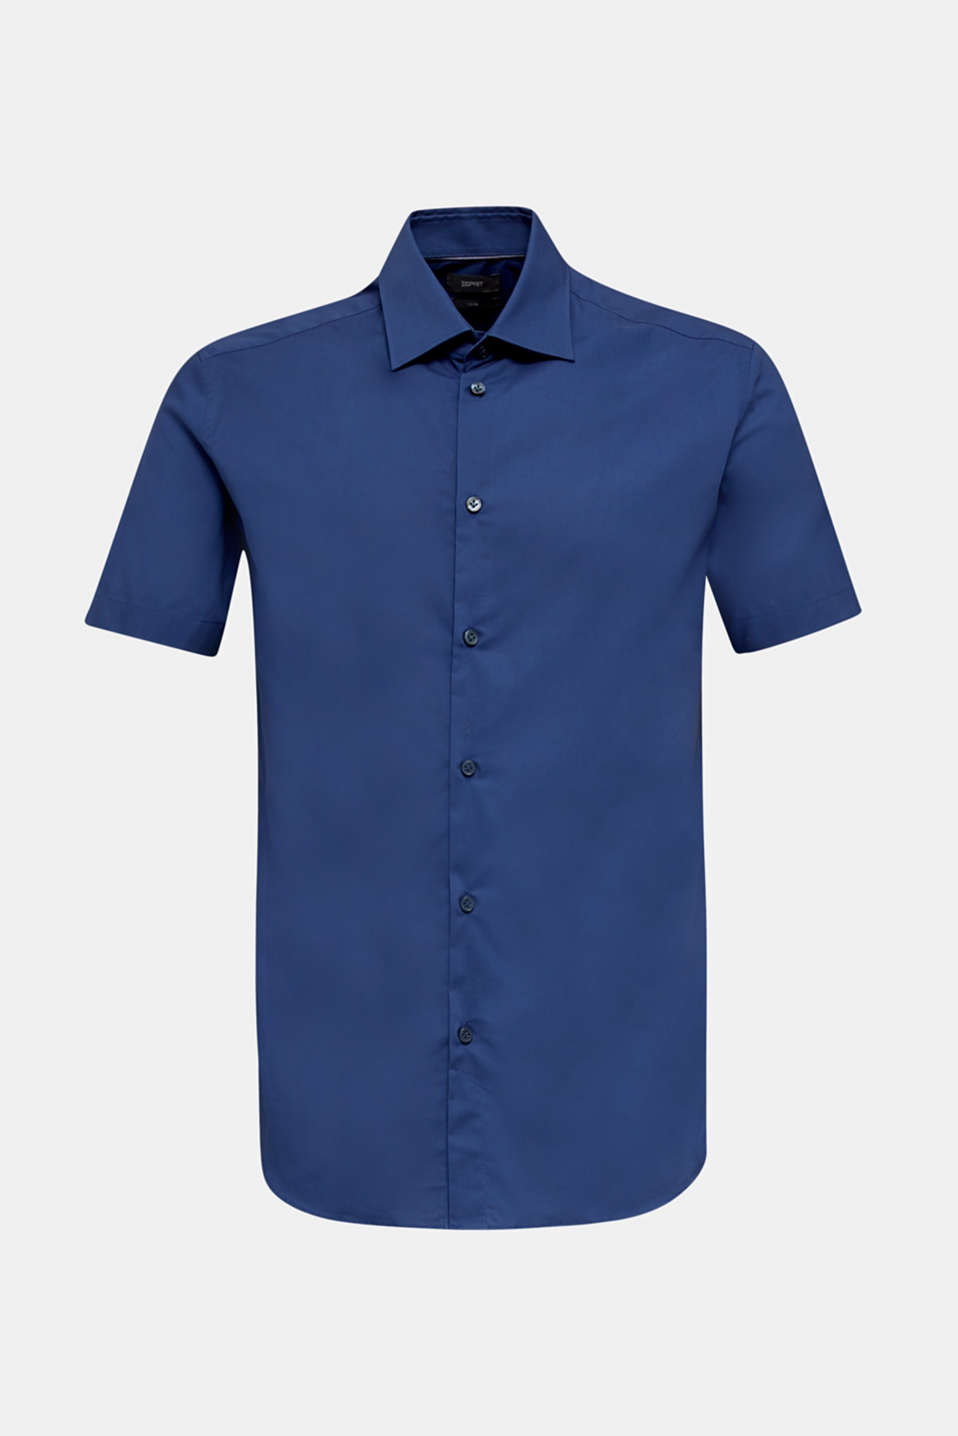 Shirt with mechanical stretch, 100% cotton, DARK BLUE, detail image number 6